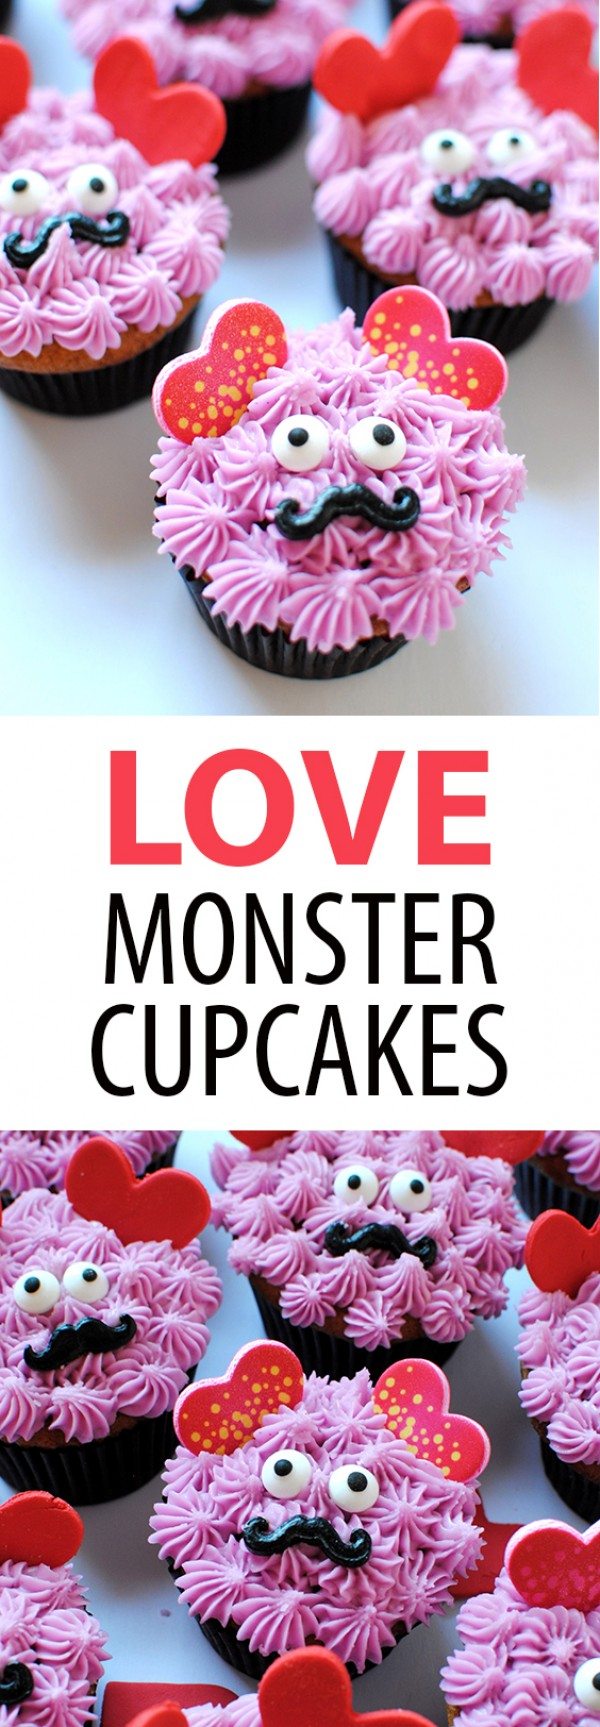 Get the recipe Love Monster Cupcakes @recipes_to_go